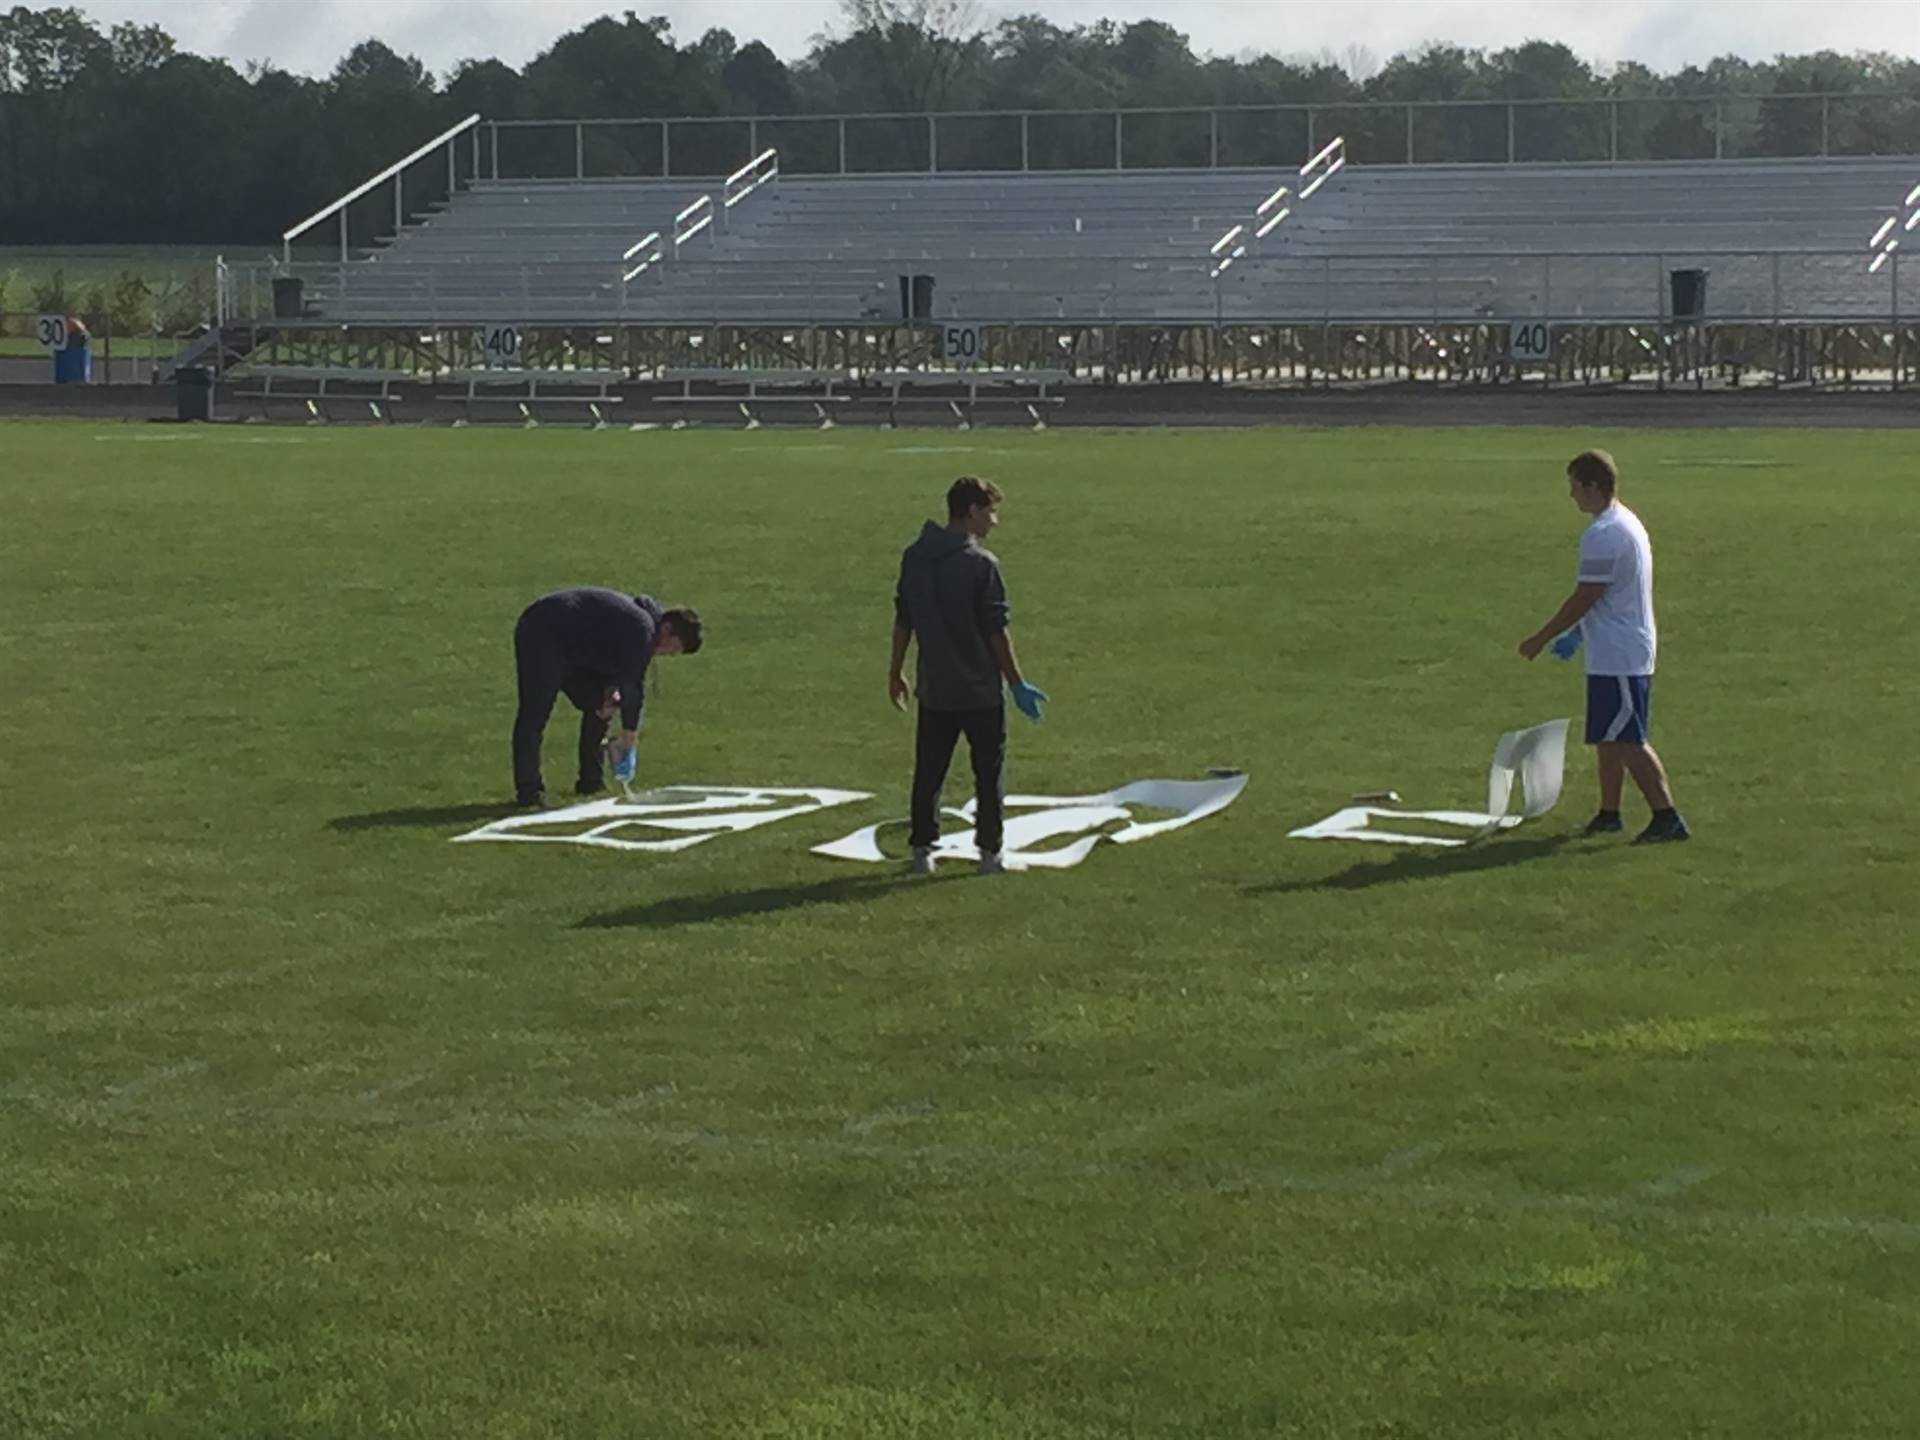 Painting football field